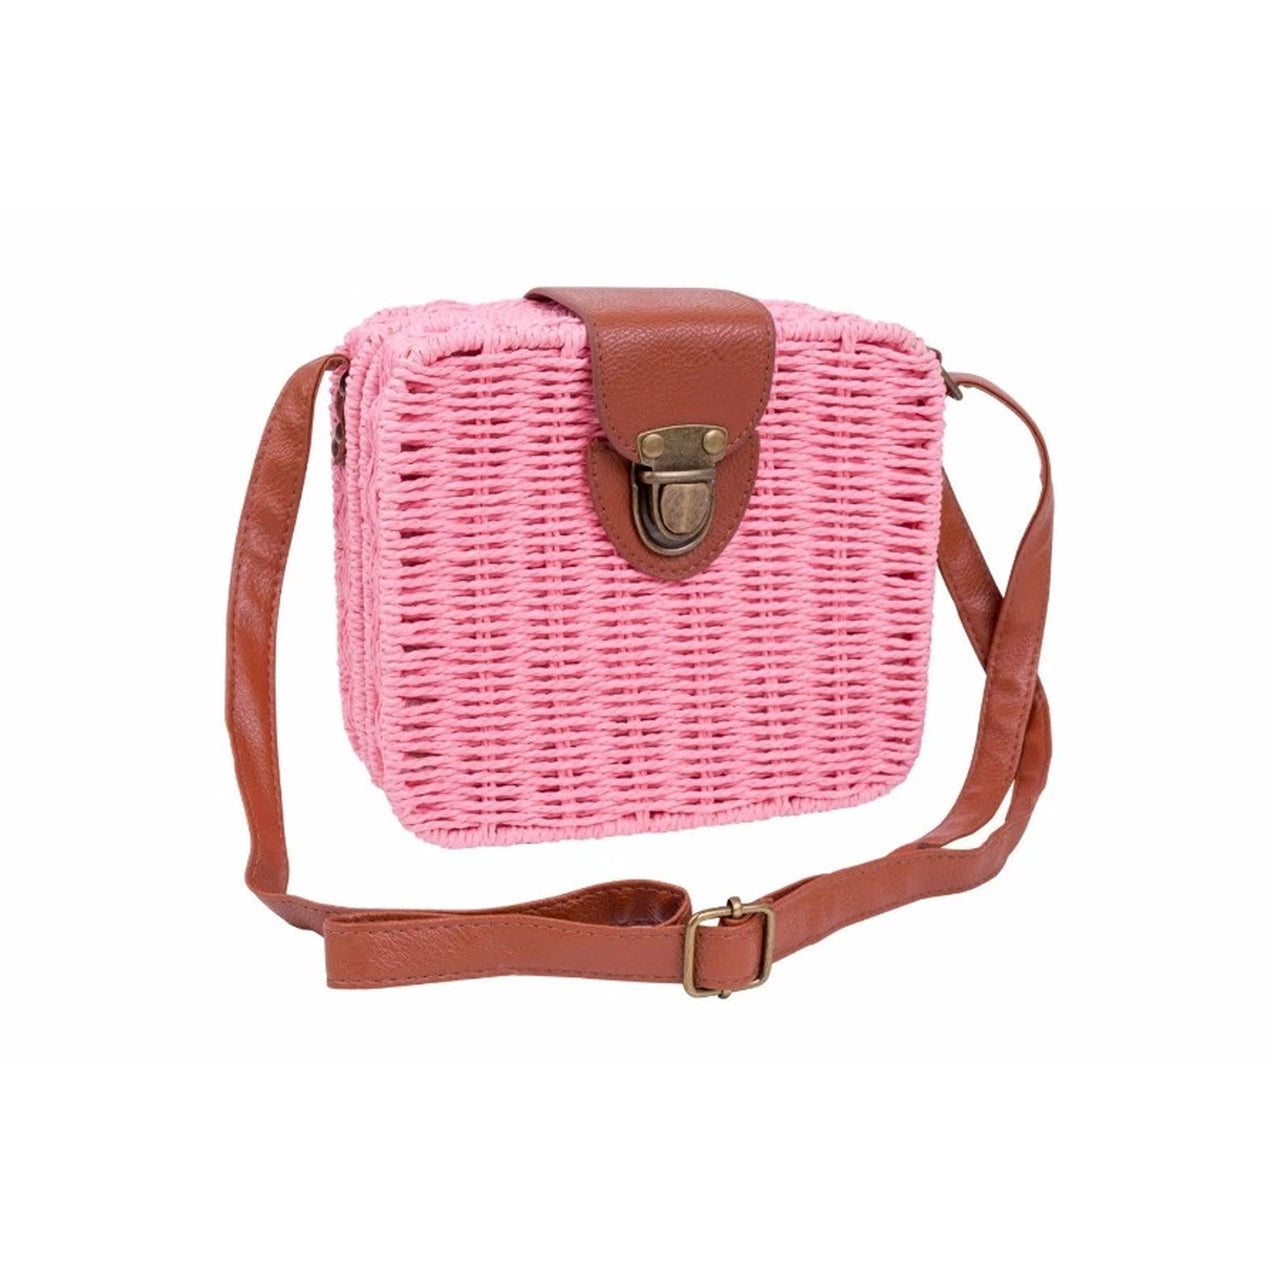 Square Wicker Sling Bag - Pink